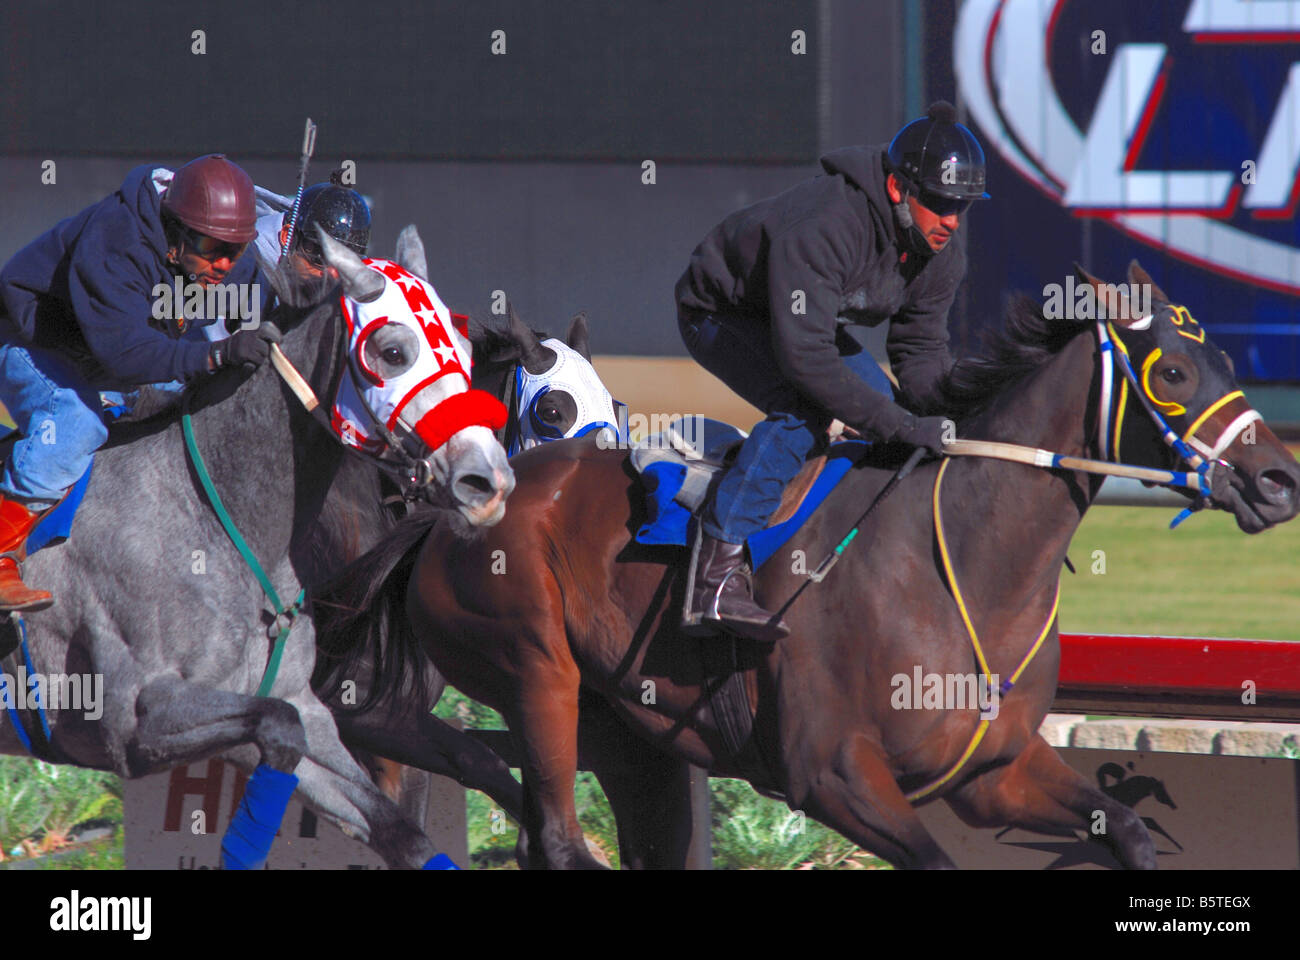 Horse racing at an American horse race track Stock Photo